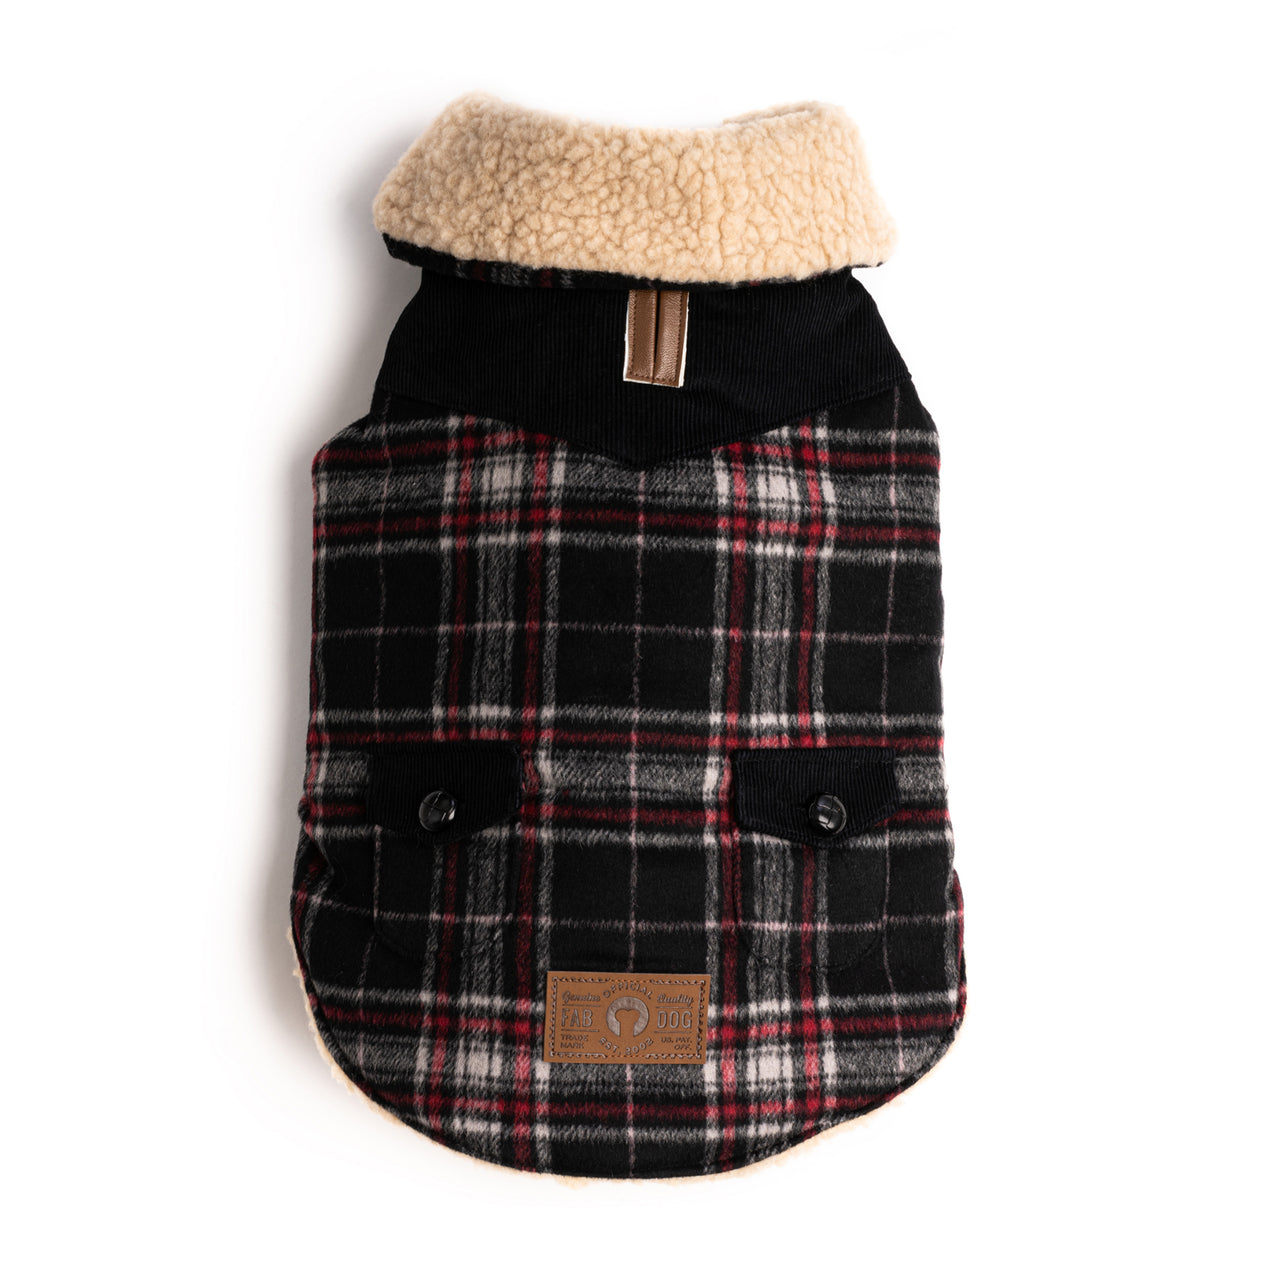 Black Wool Plaid Shearling Coat